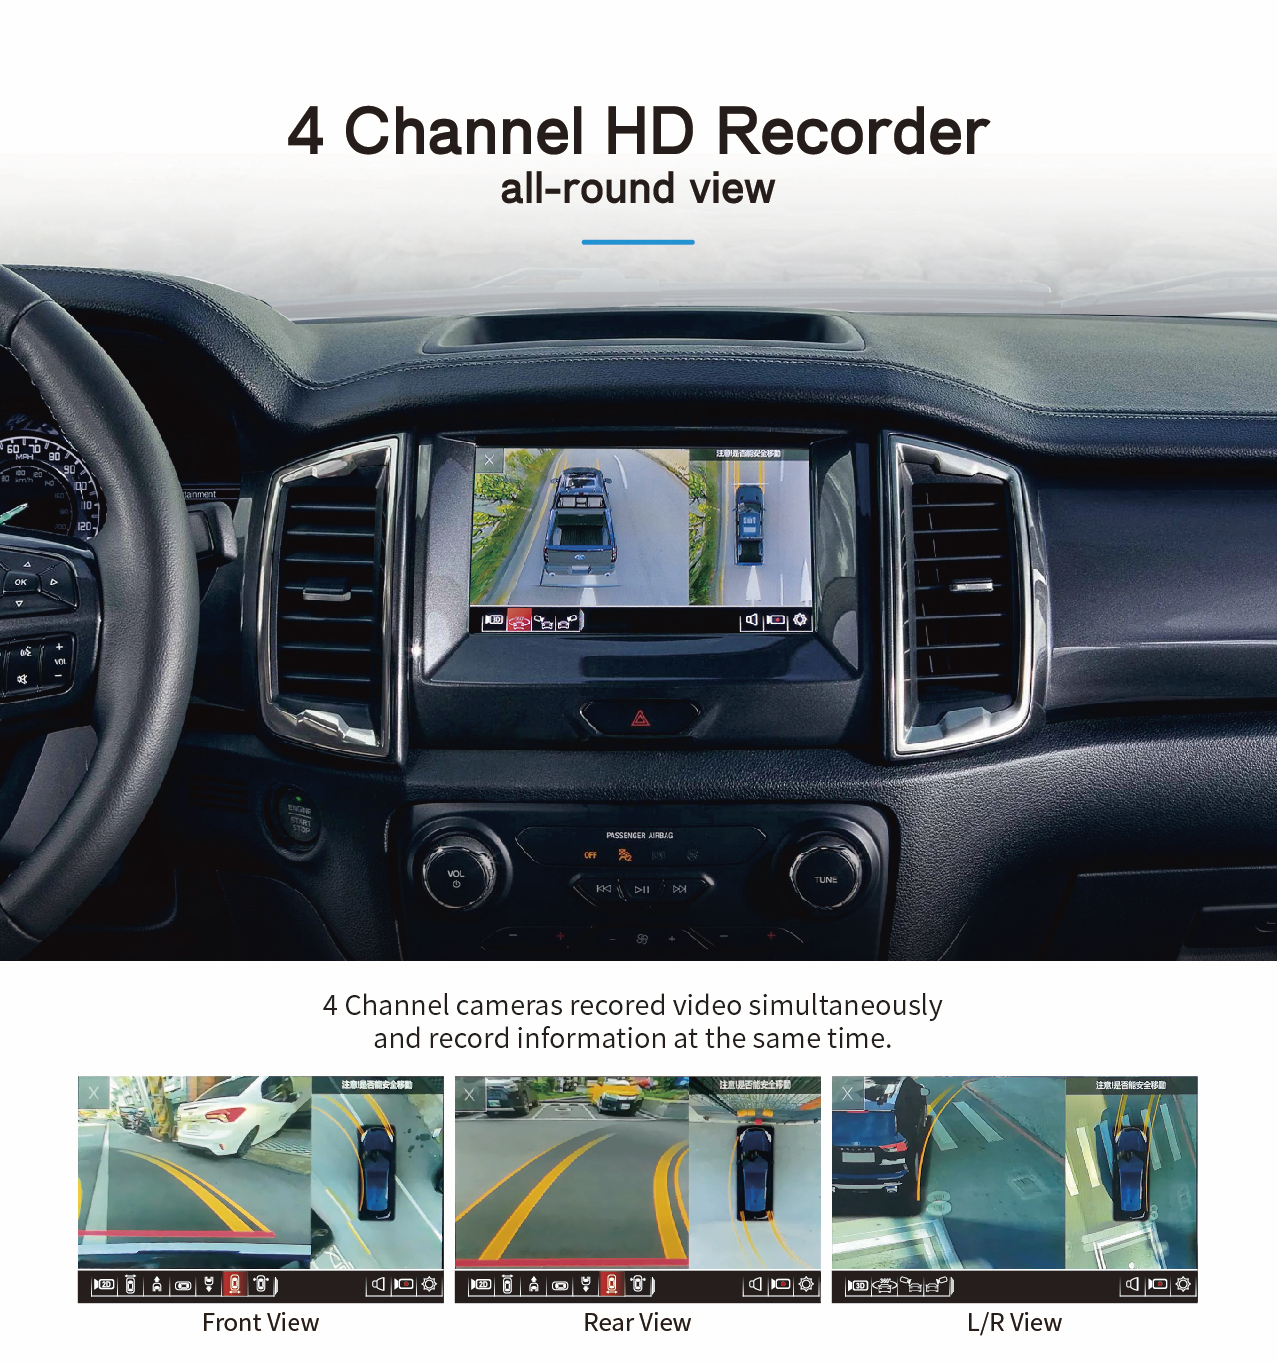 4 Channel HD Recorder all-round view